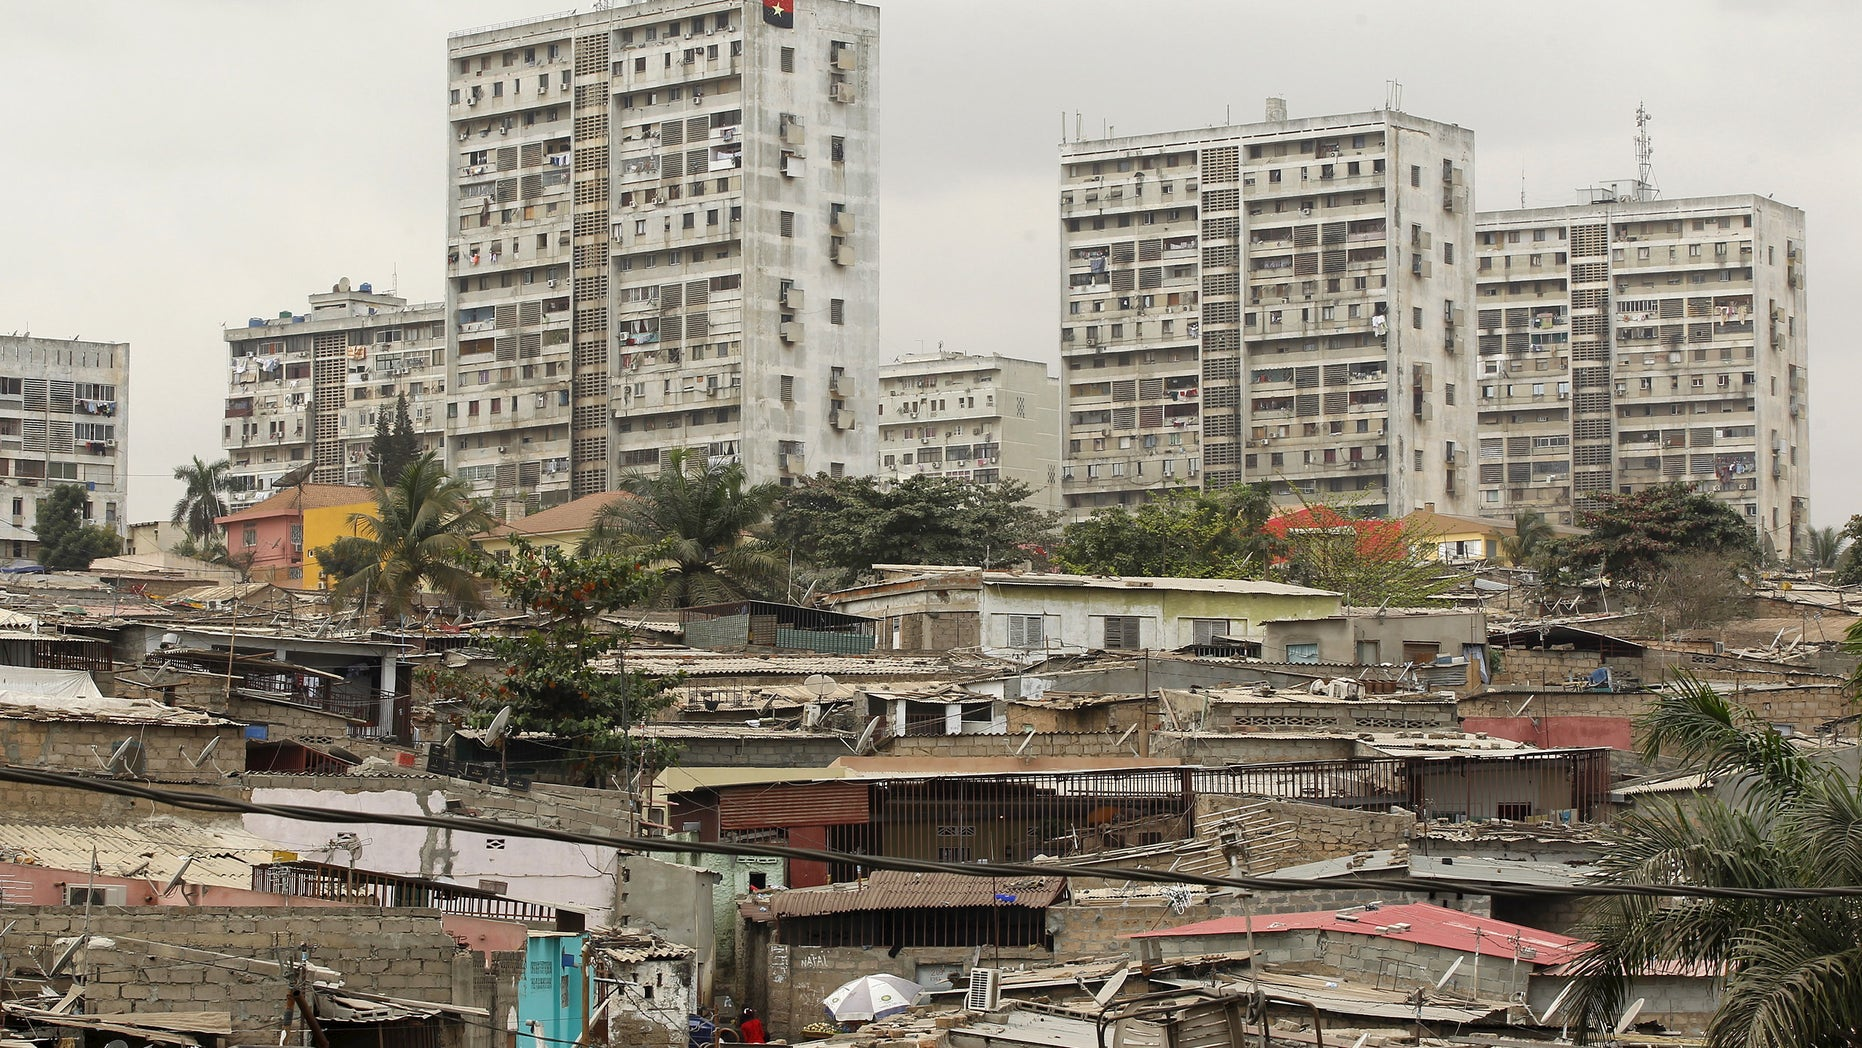 High-rise buildings are seen behind informal settlements in the capital of Luanda, in this August 30, 2012 file photo. REUTERS/Siphiwe Sibeko/Files - RTX2A2MP